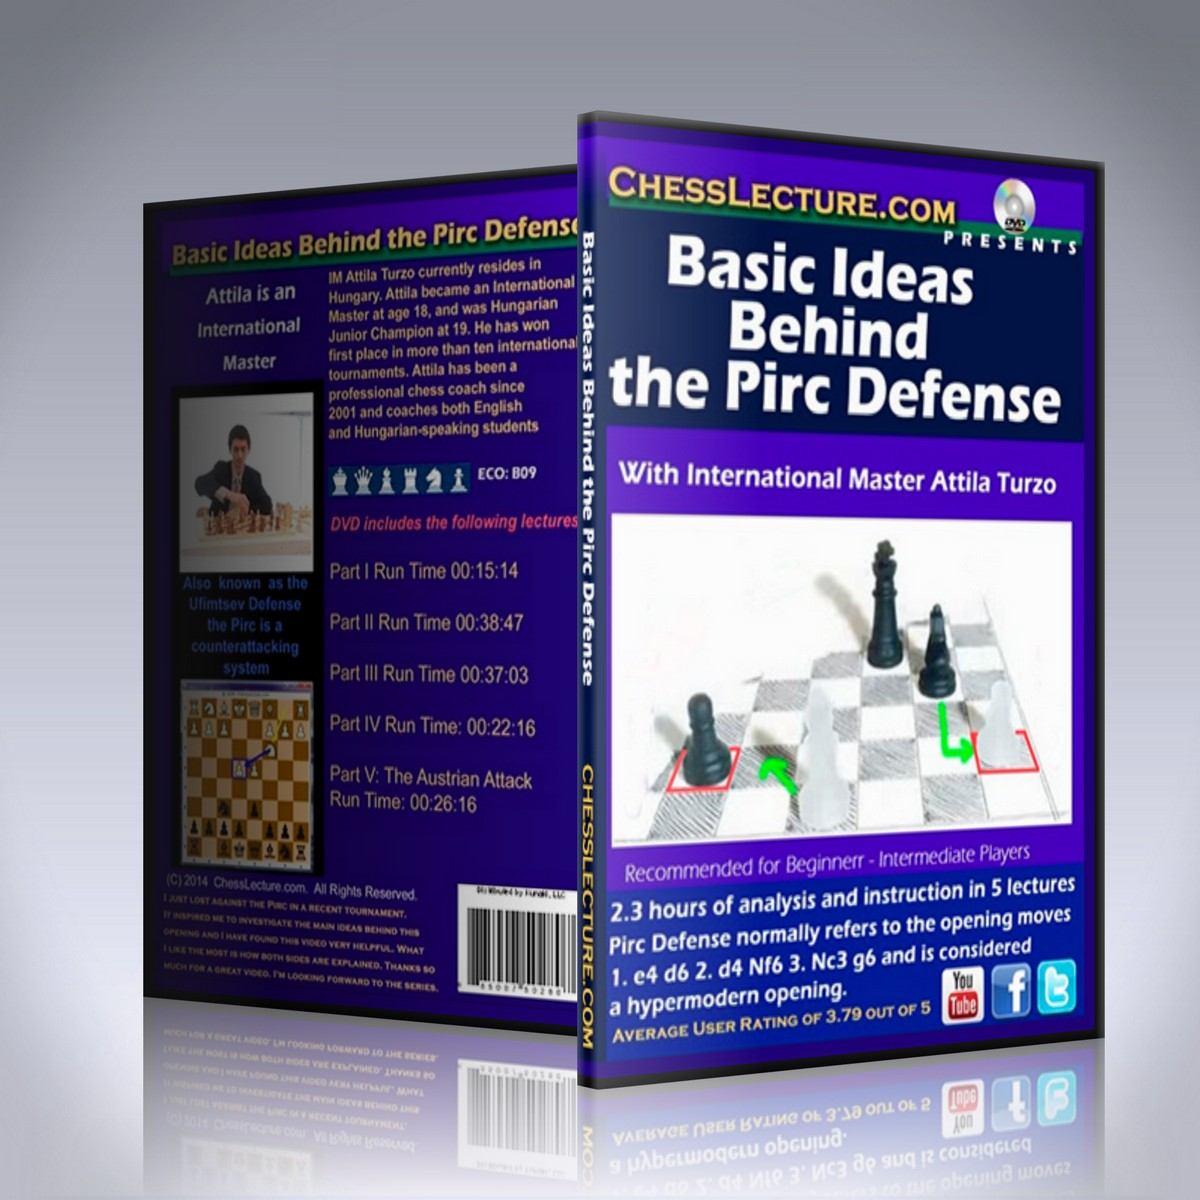 Basic Ideas Behind the Pirc Defense – IM Attila Turzo